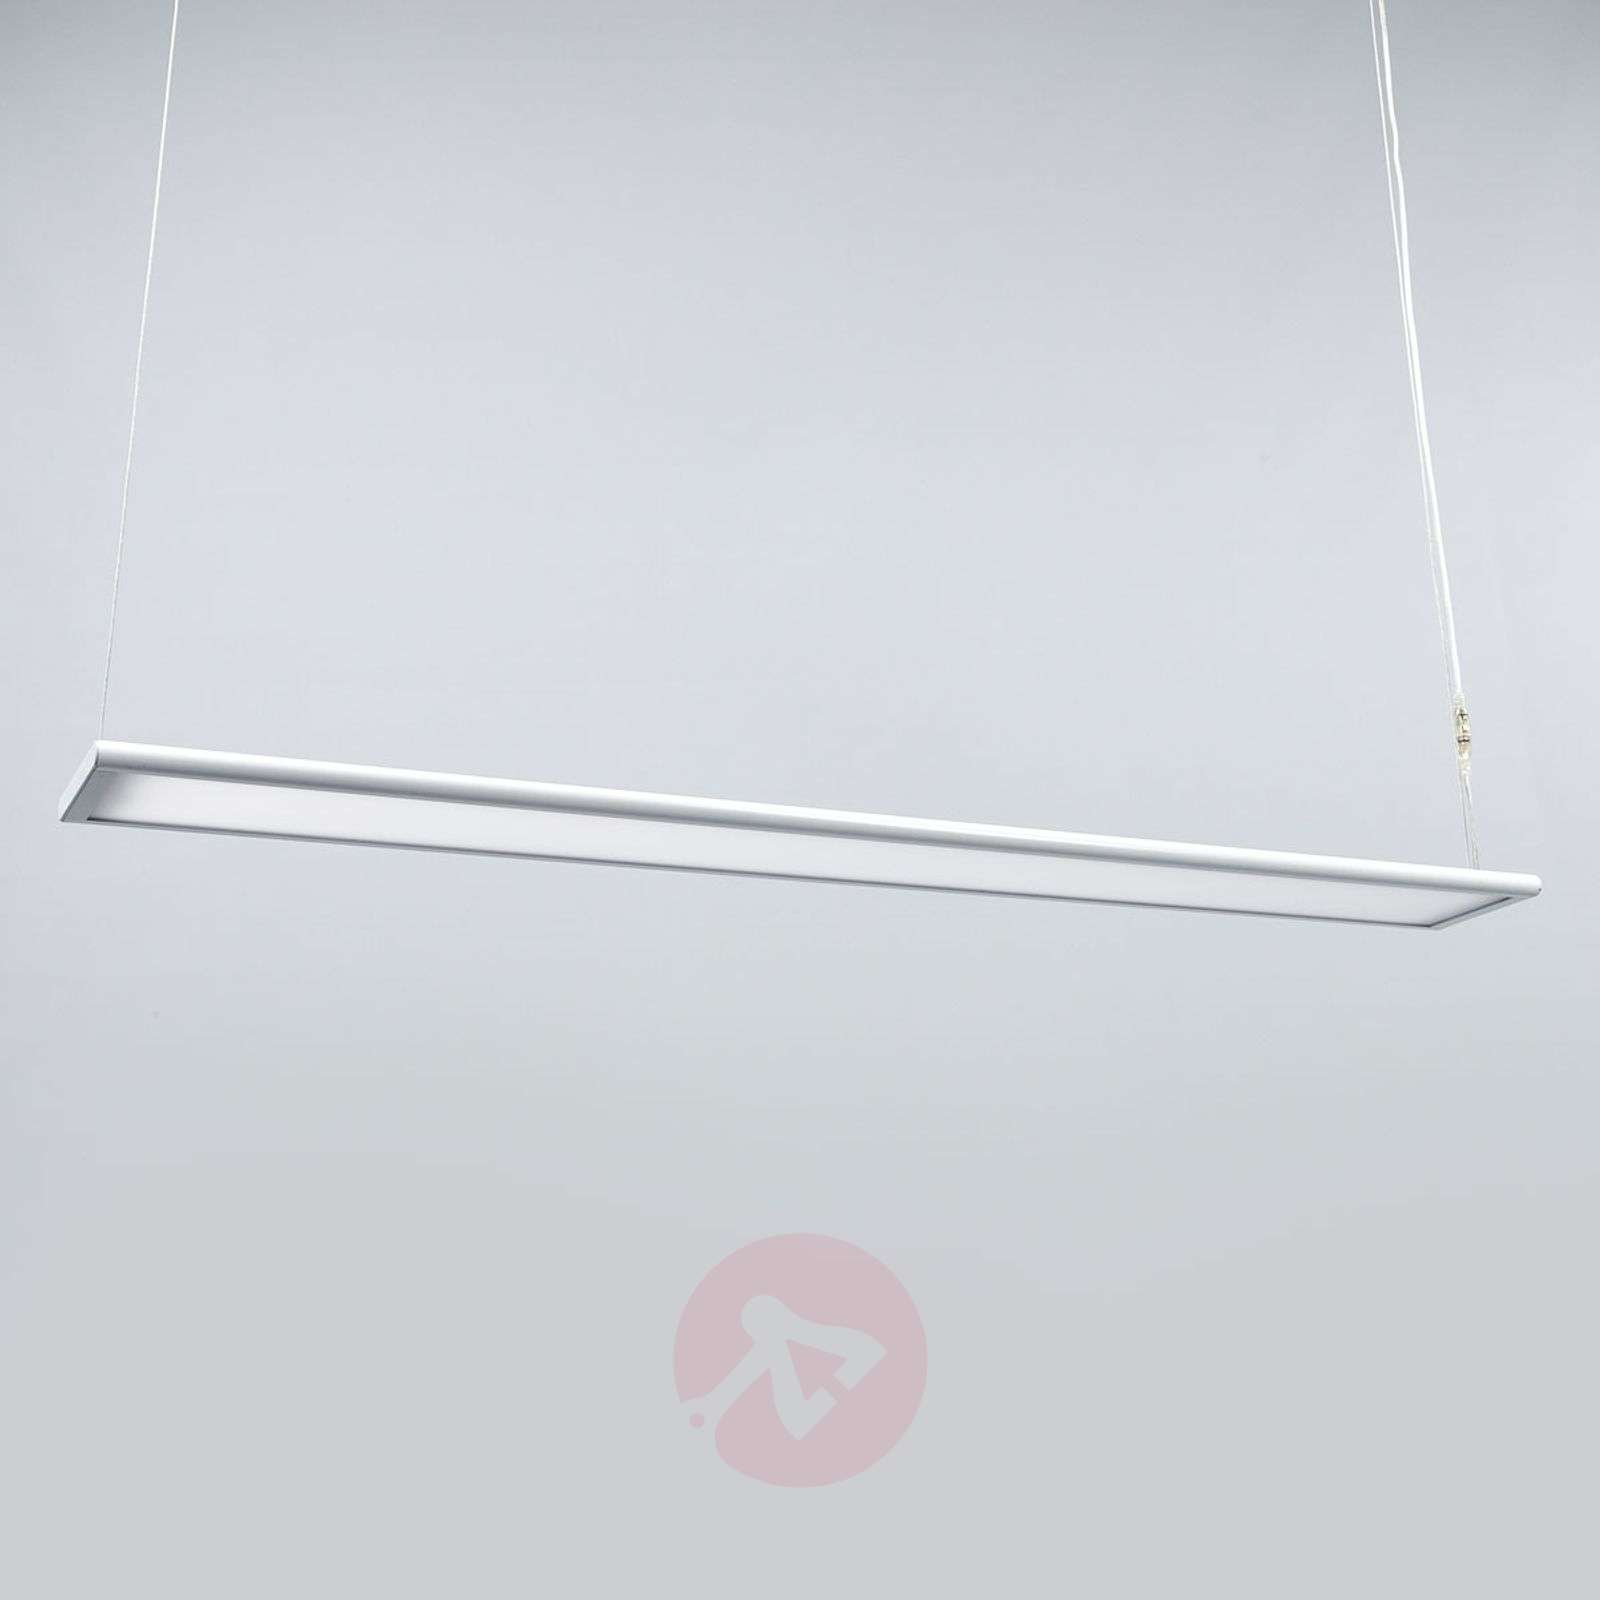 Dimmable LED office hanging light Samu, 40.5 W-9967020-02